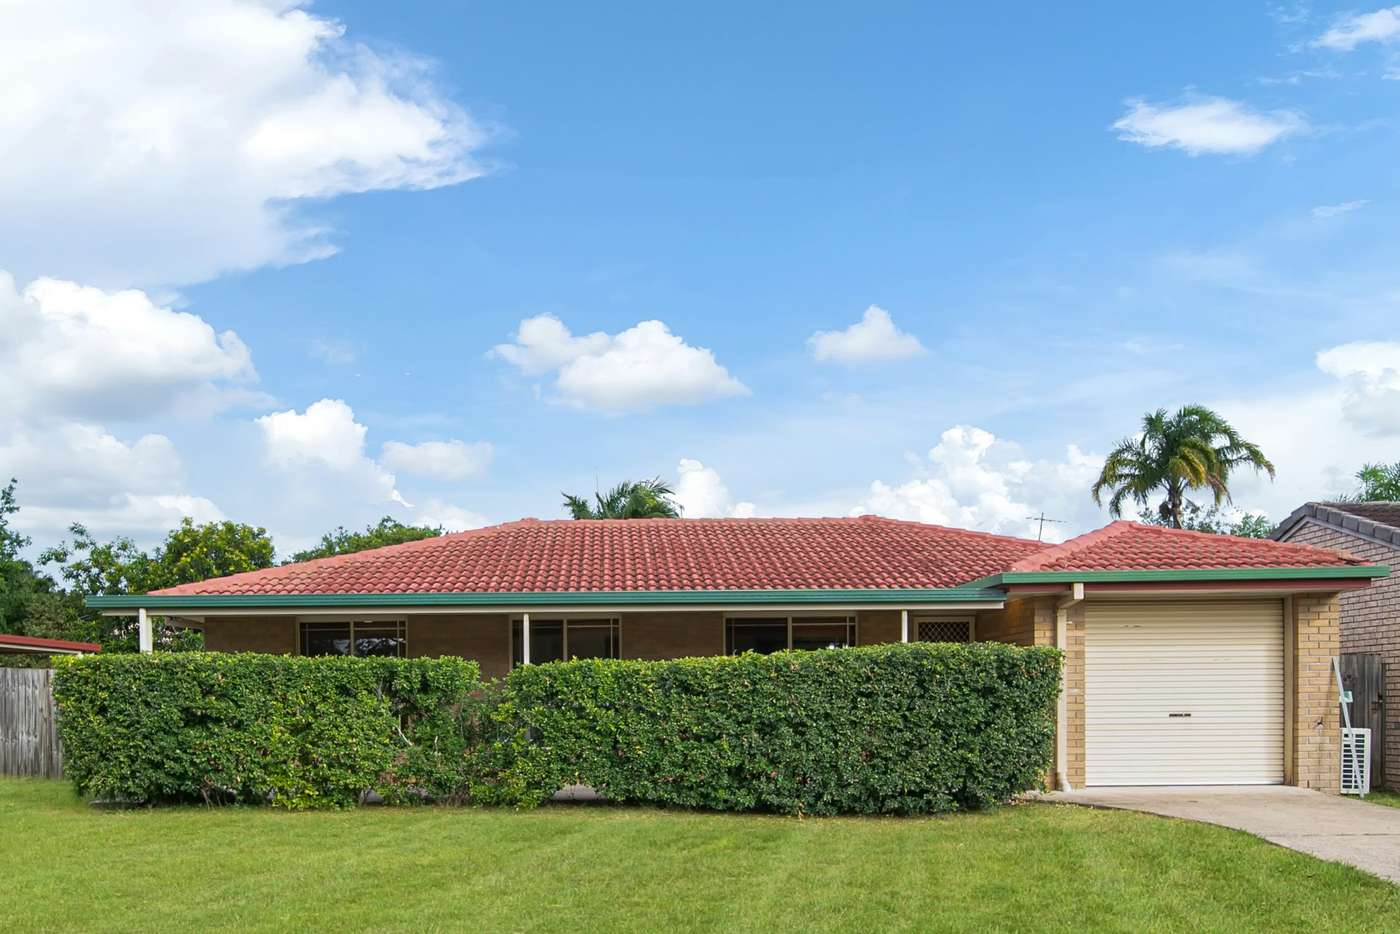 Main view of Homely house listing, 3 Carlton Close, Bethania QLD 4205